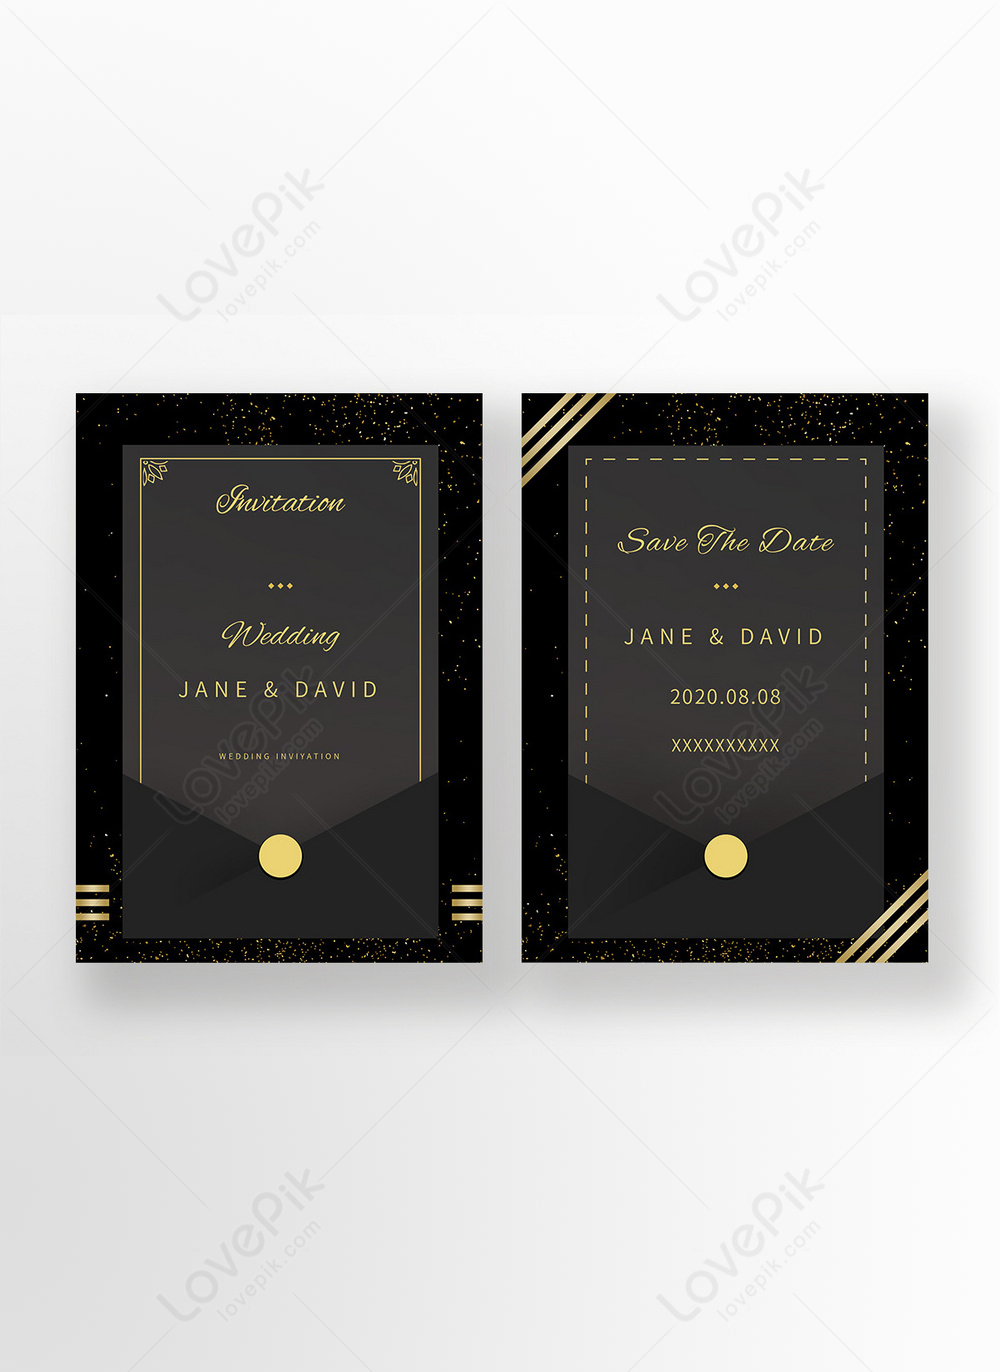 High-end simple black gold wind gold pink european style light luxury  wedding invitation template image_picture free download  465336826_lovepik.com